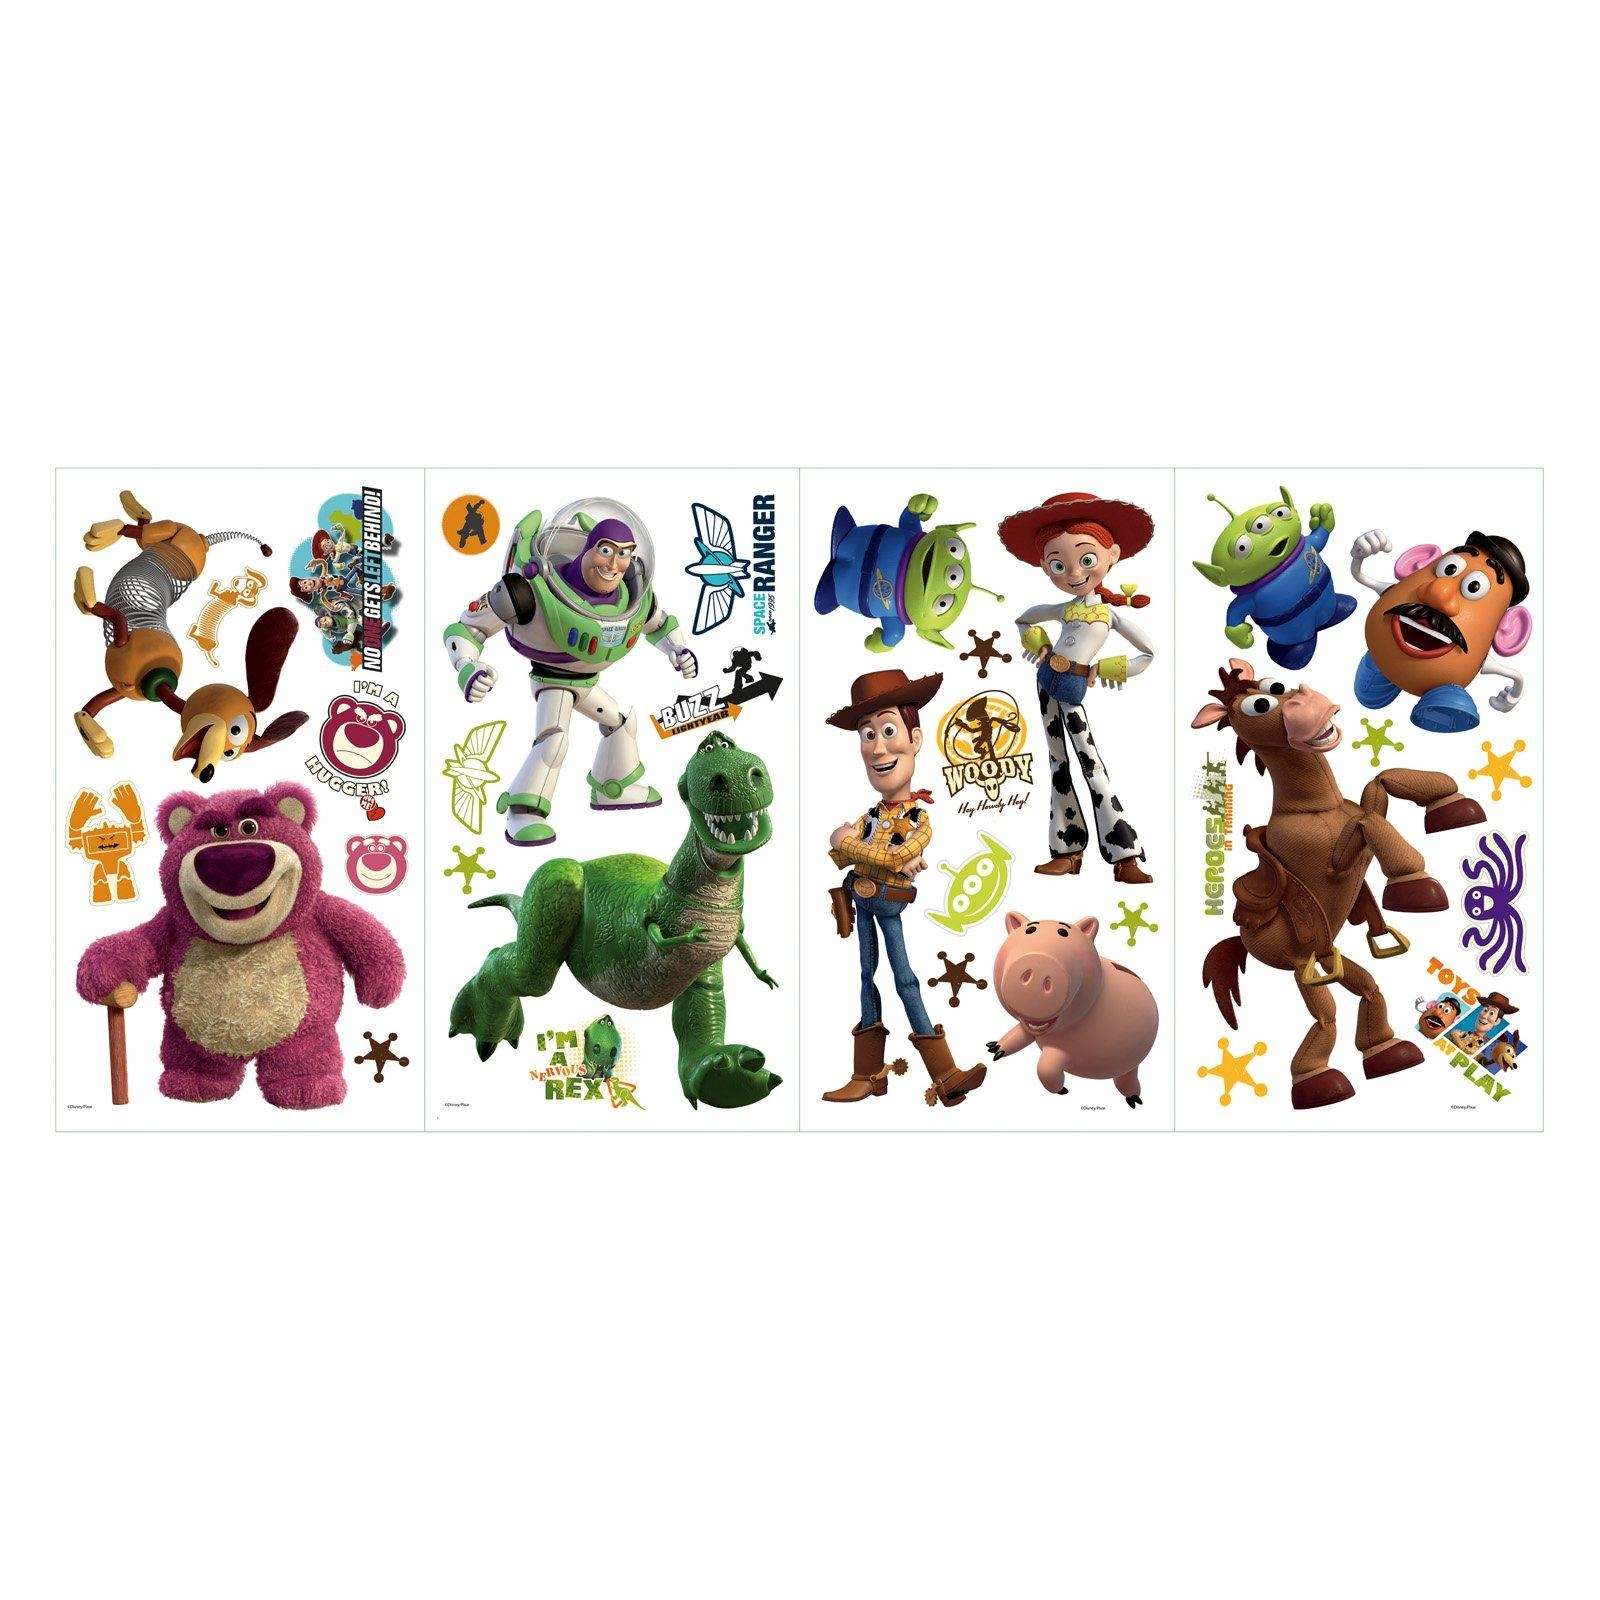 Roommates Disney Pixar Toy Story 3 Peel & Stick Wall Decals – Glow Throughout Toy Story Wall Stickers (View 2 of 20)